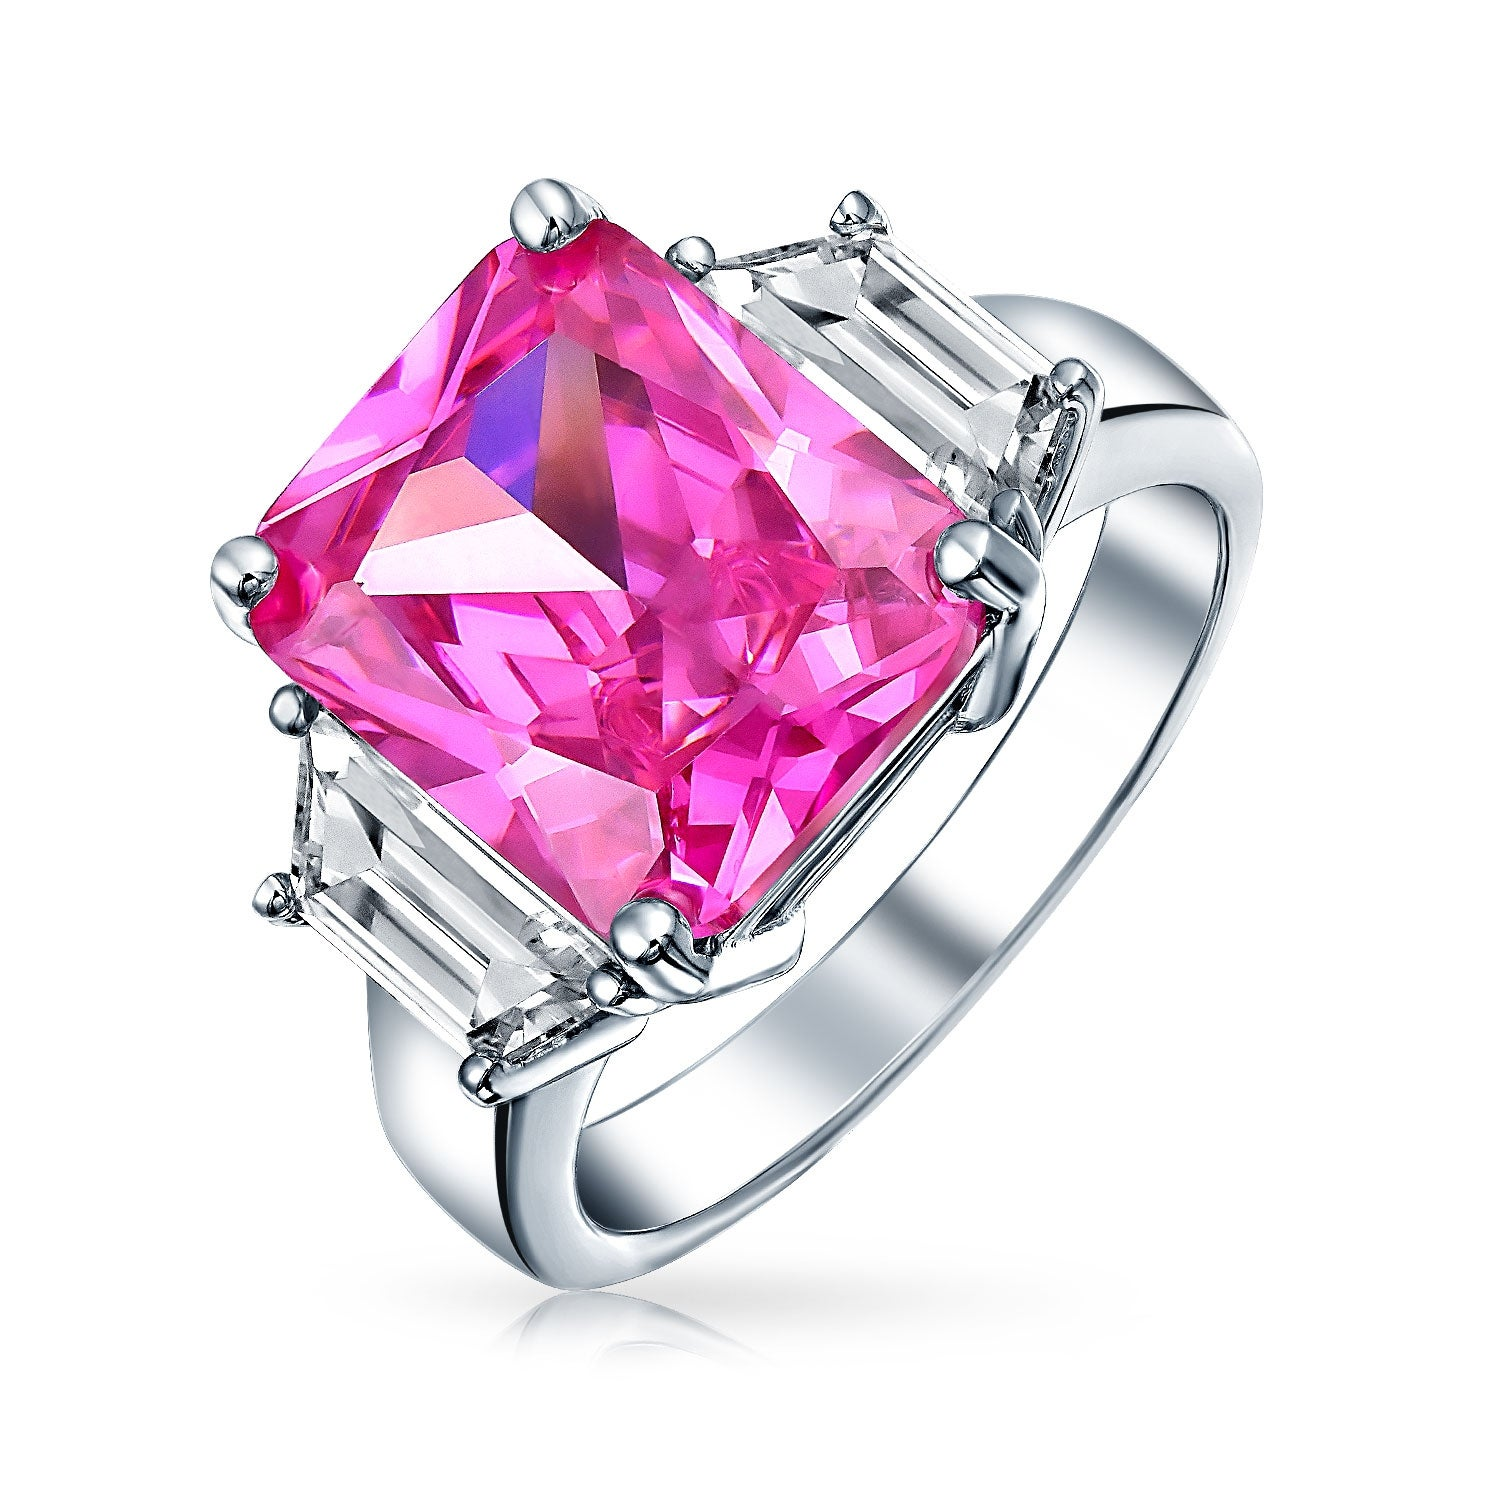 Buy Pink Cubic Zirconia Rings Online at Overstock.com | Our Best ...